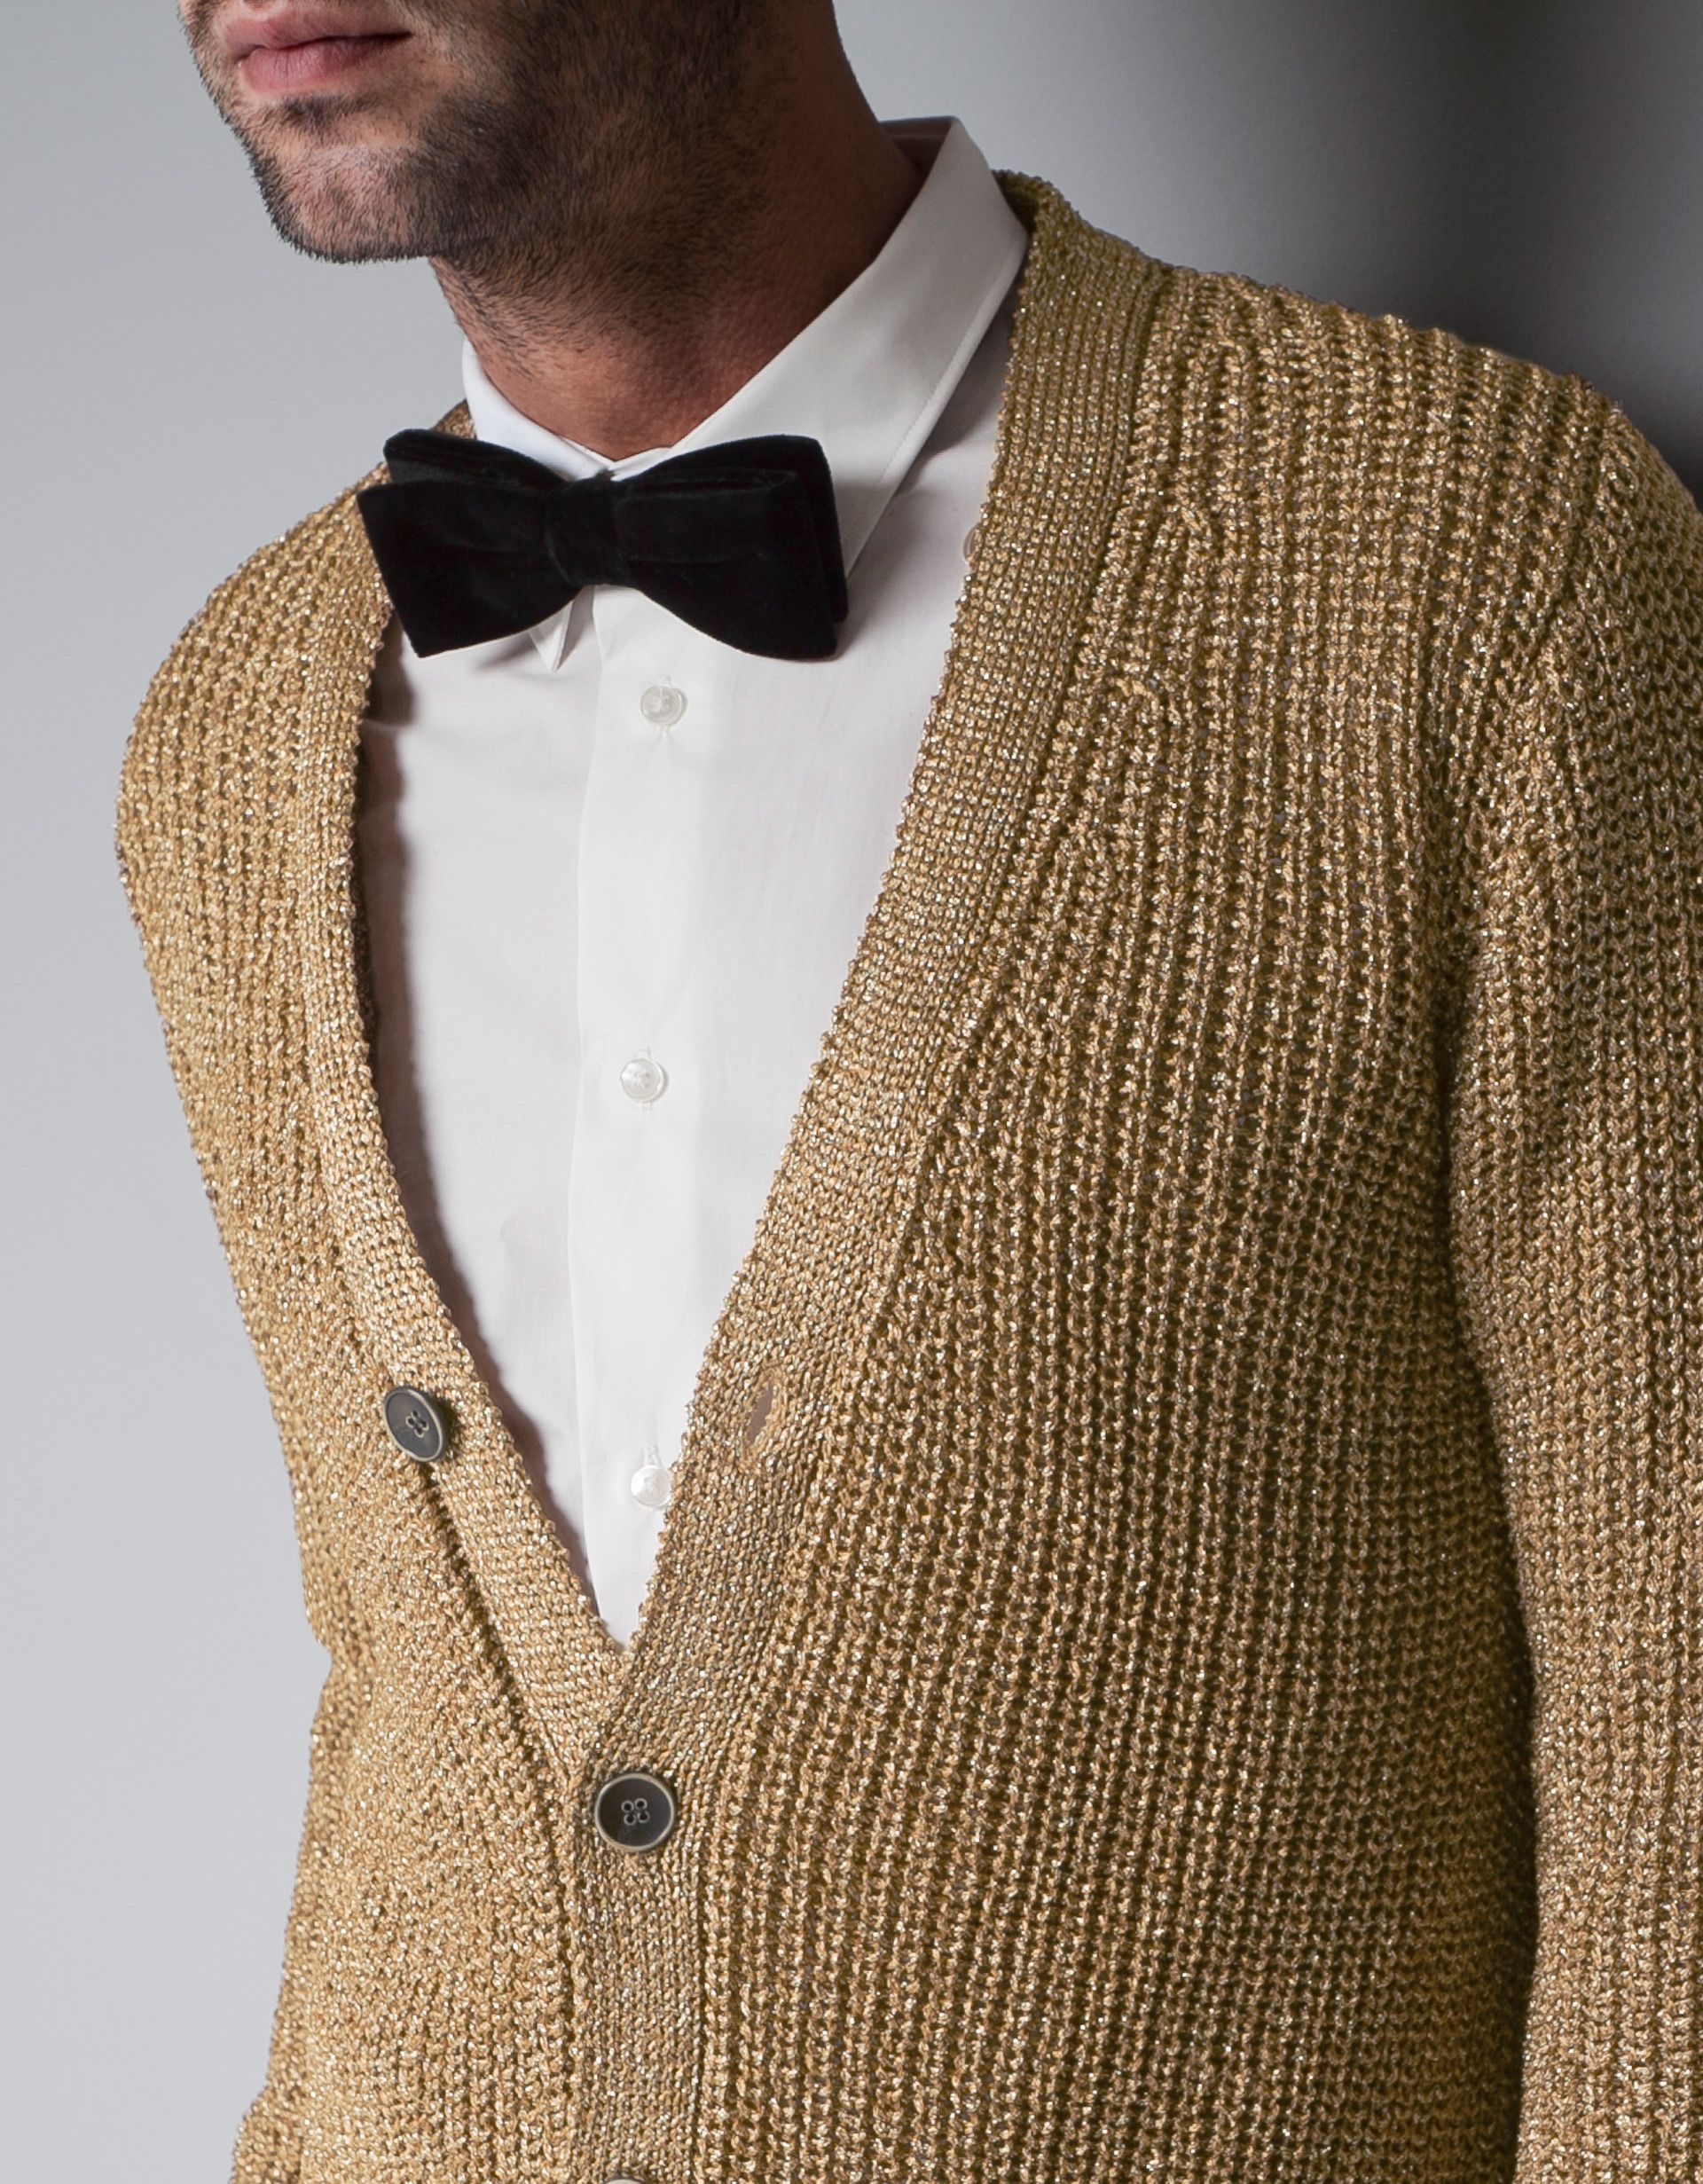 golden sweater & black bow tie | Black & Gold Party | Pinterest ...